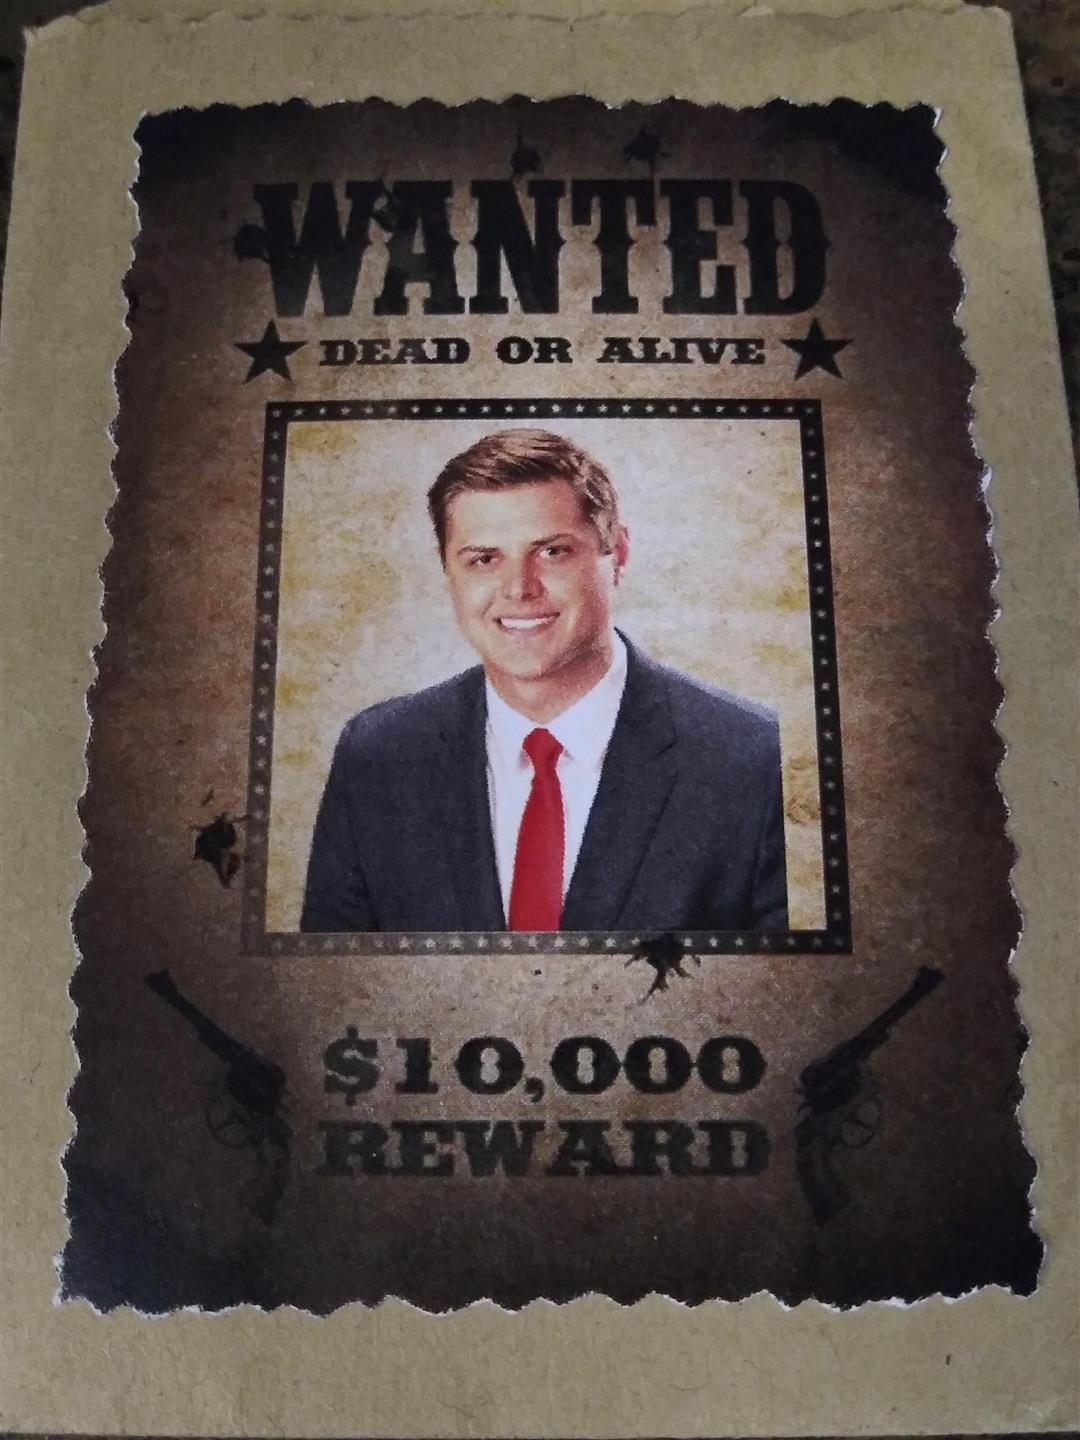 Faux wanted poster for cowboy party